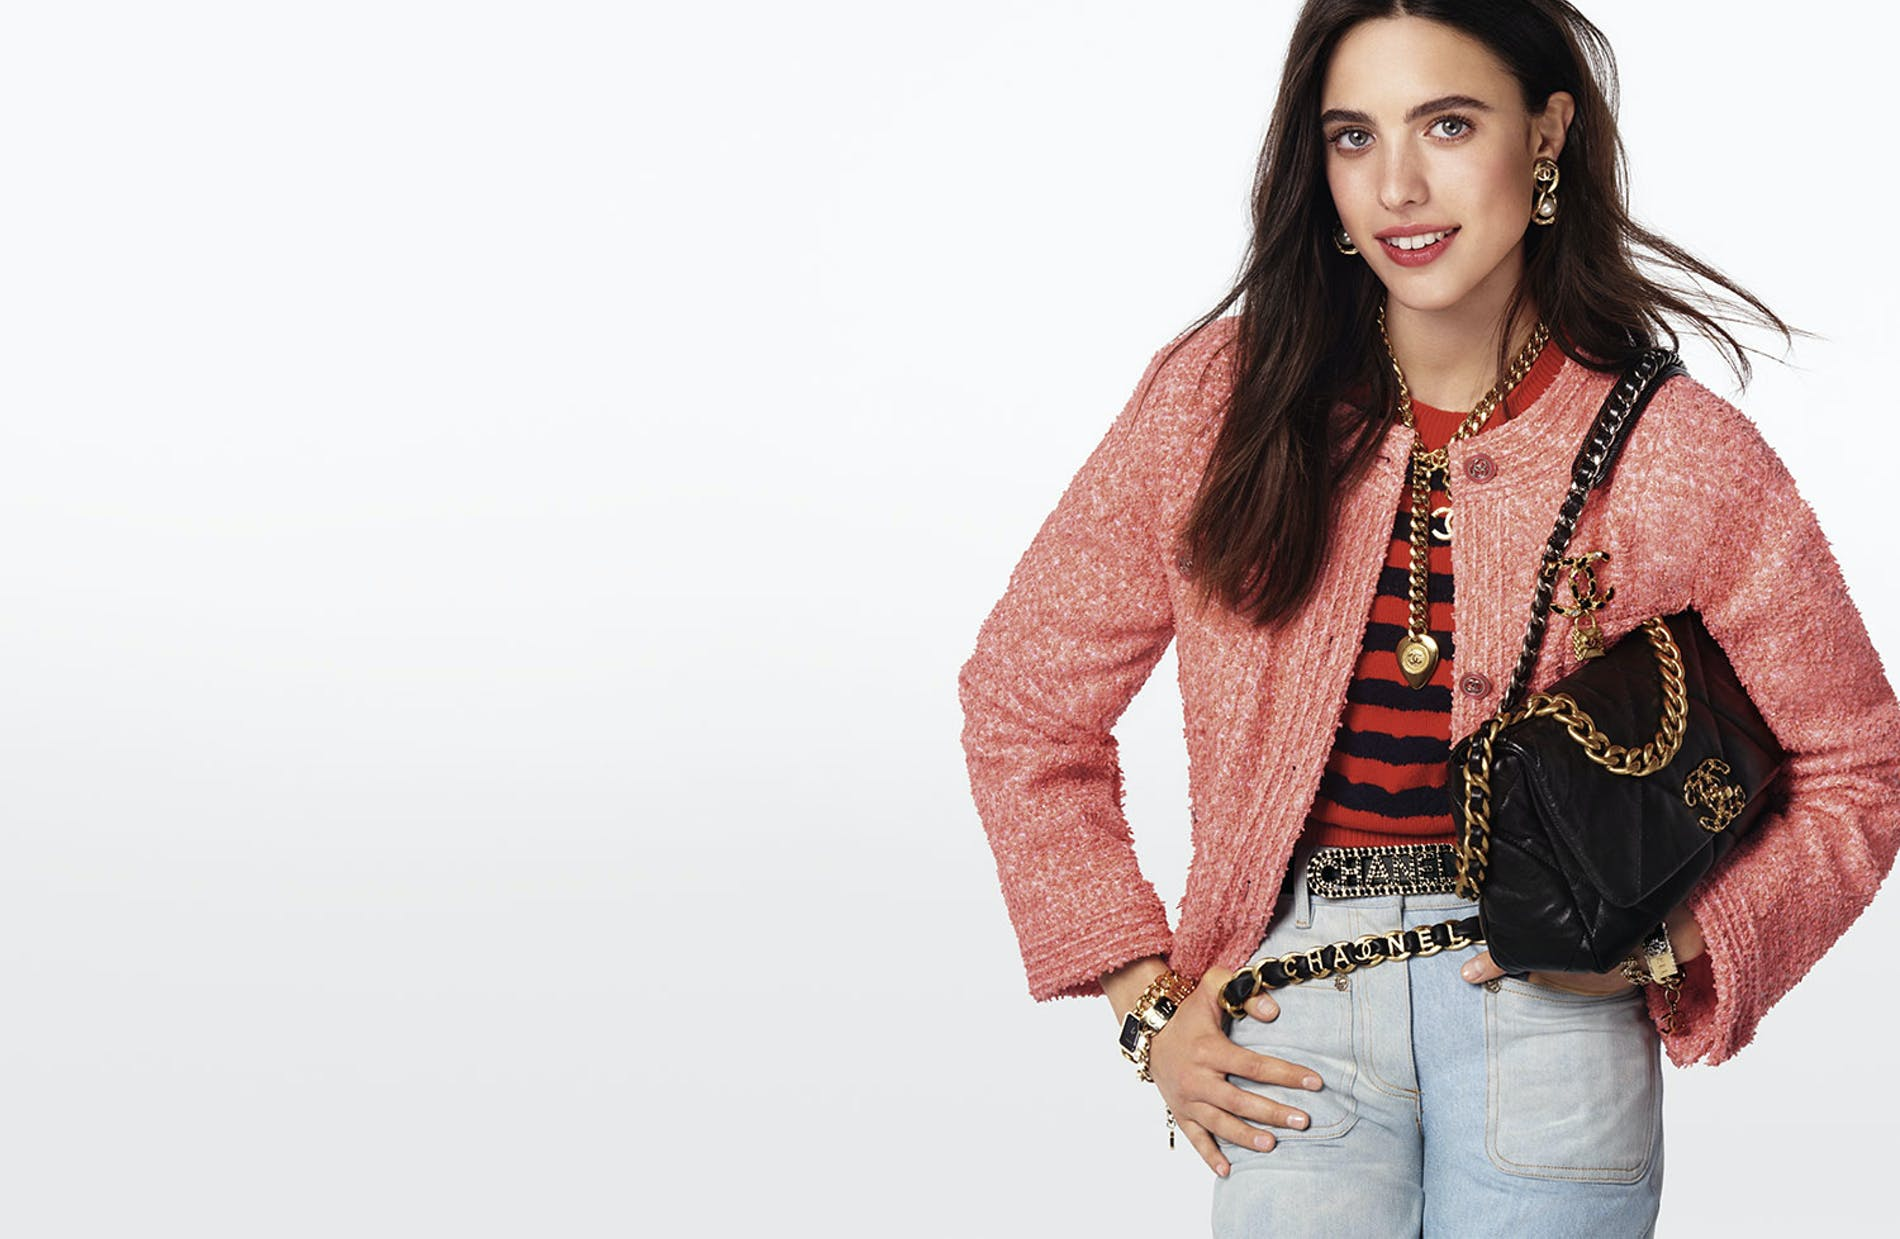 1603875171917703-01_CHANEL_19_bag_ad_campaign_photographed_by_Steven_Meisel_Margaret_Qualley_LD